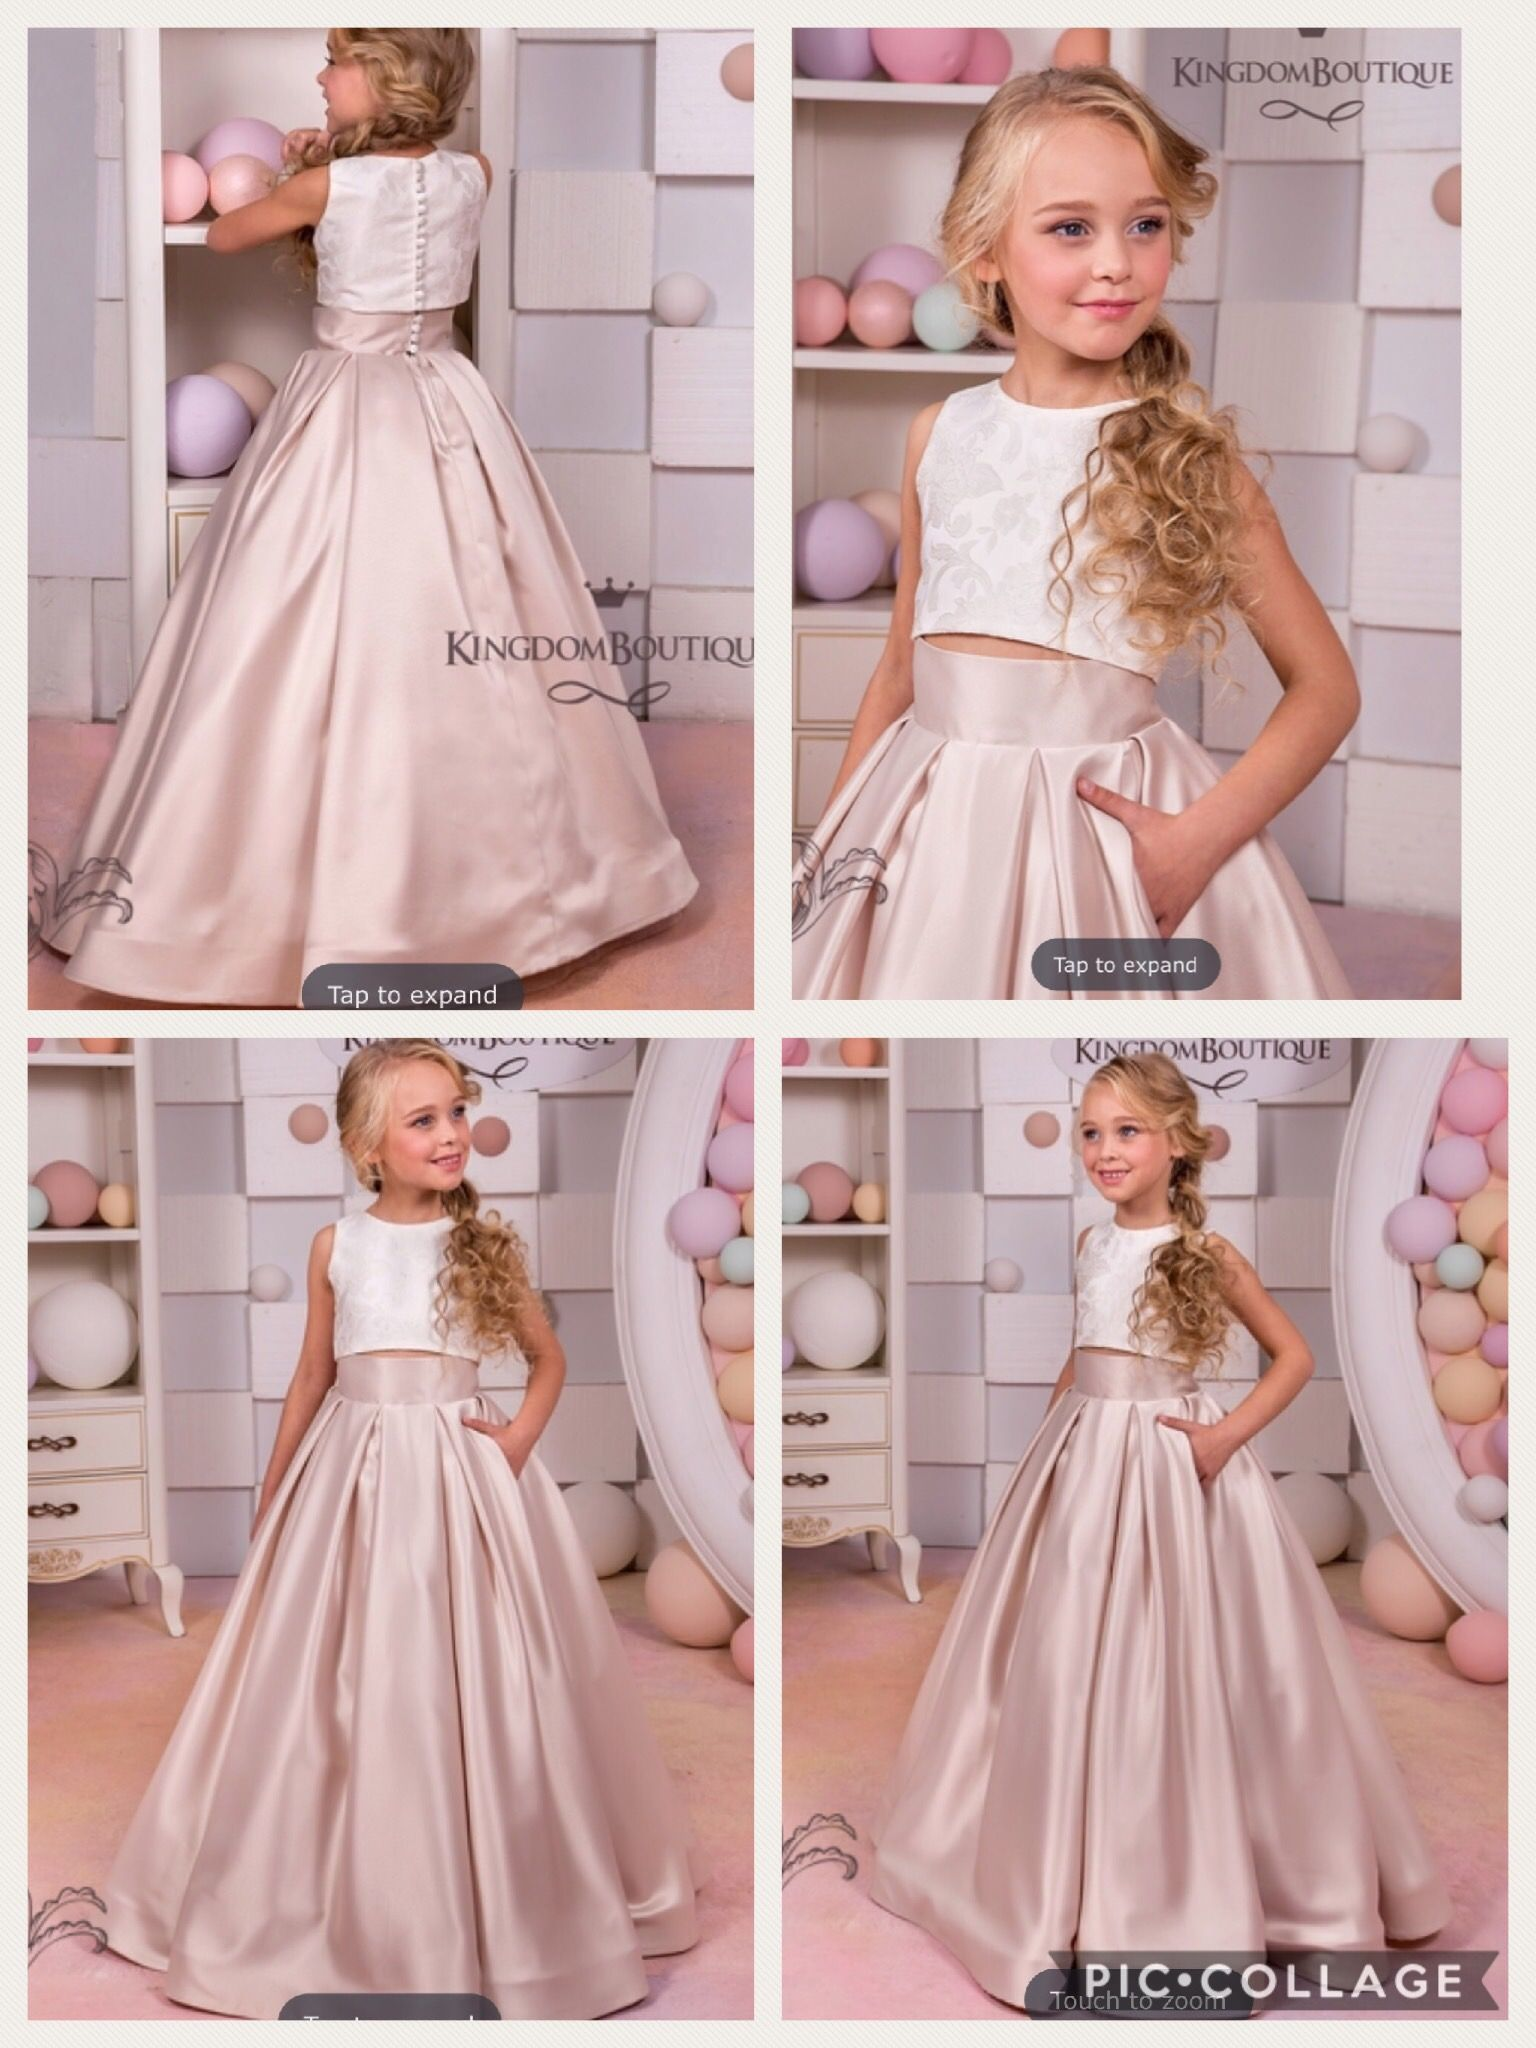 Kingdom Boutique Girls Dresses Vestido Para Niñas Boda